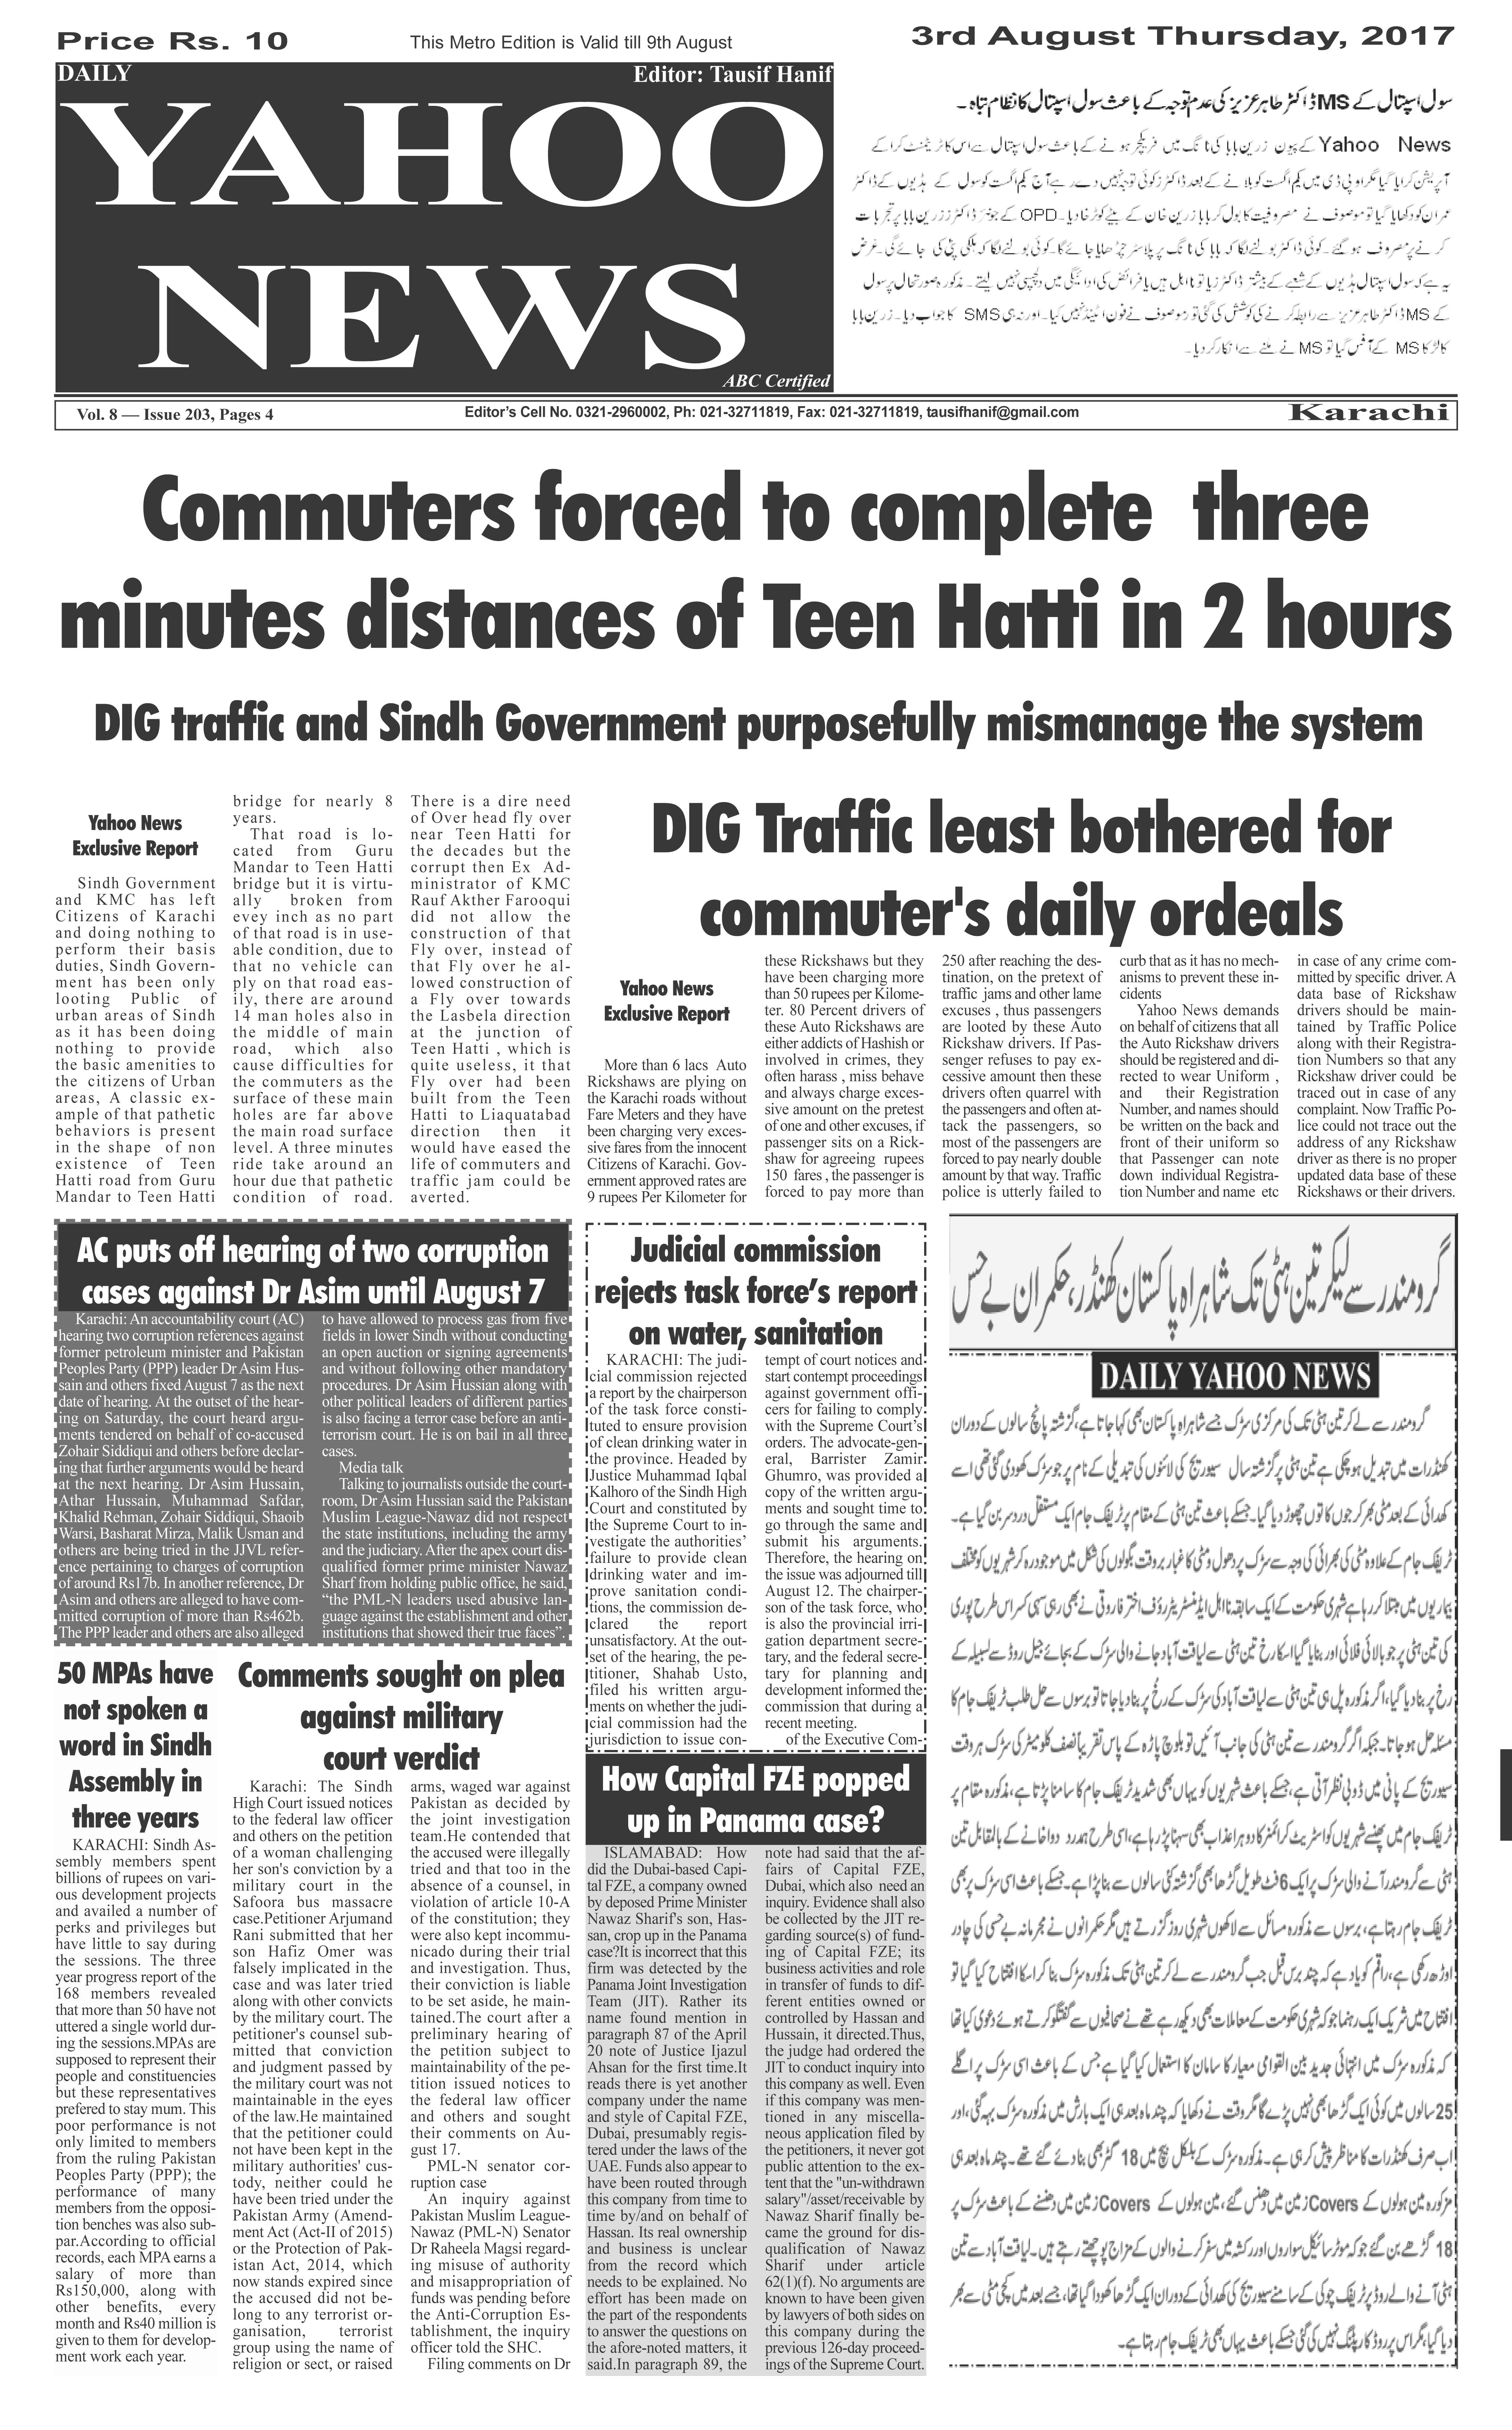 Yahoo News special issue for 3rd August 2017